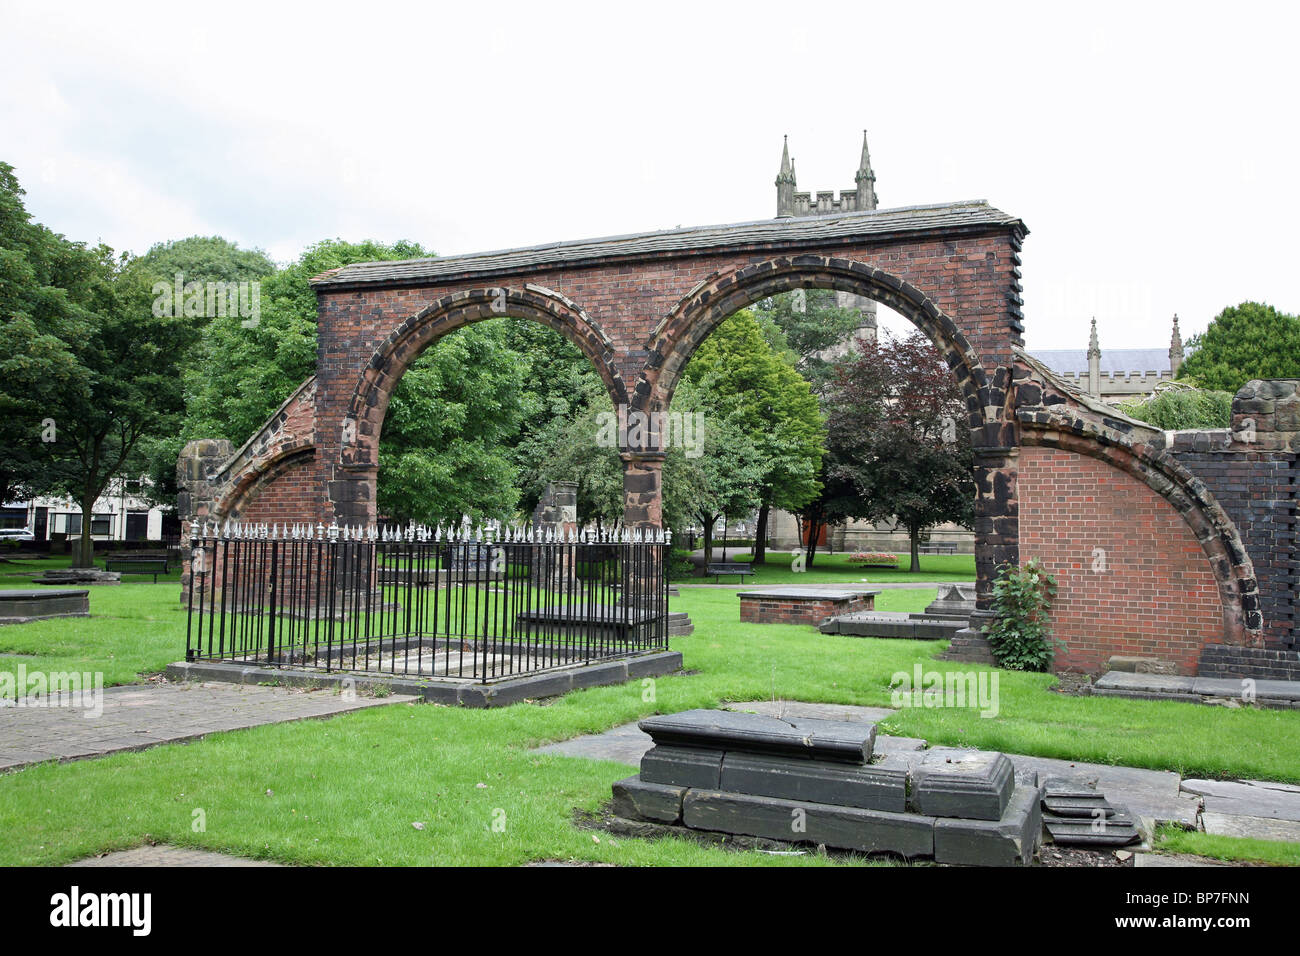 grave of Josiah Wedgwood in the Graveyard of Stoke Minster, the Church of St Peter ad Vincula, Stoke-on-Trent, Staffs, - Stock Image